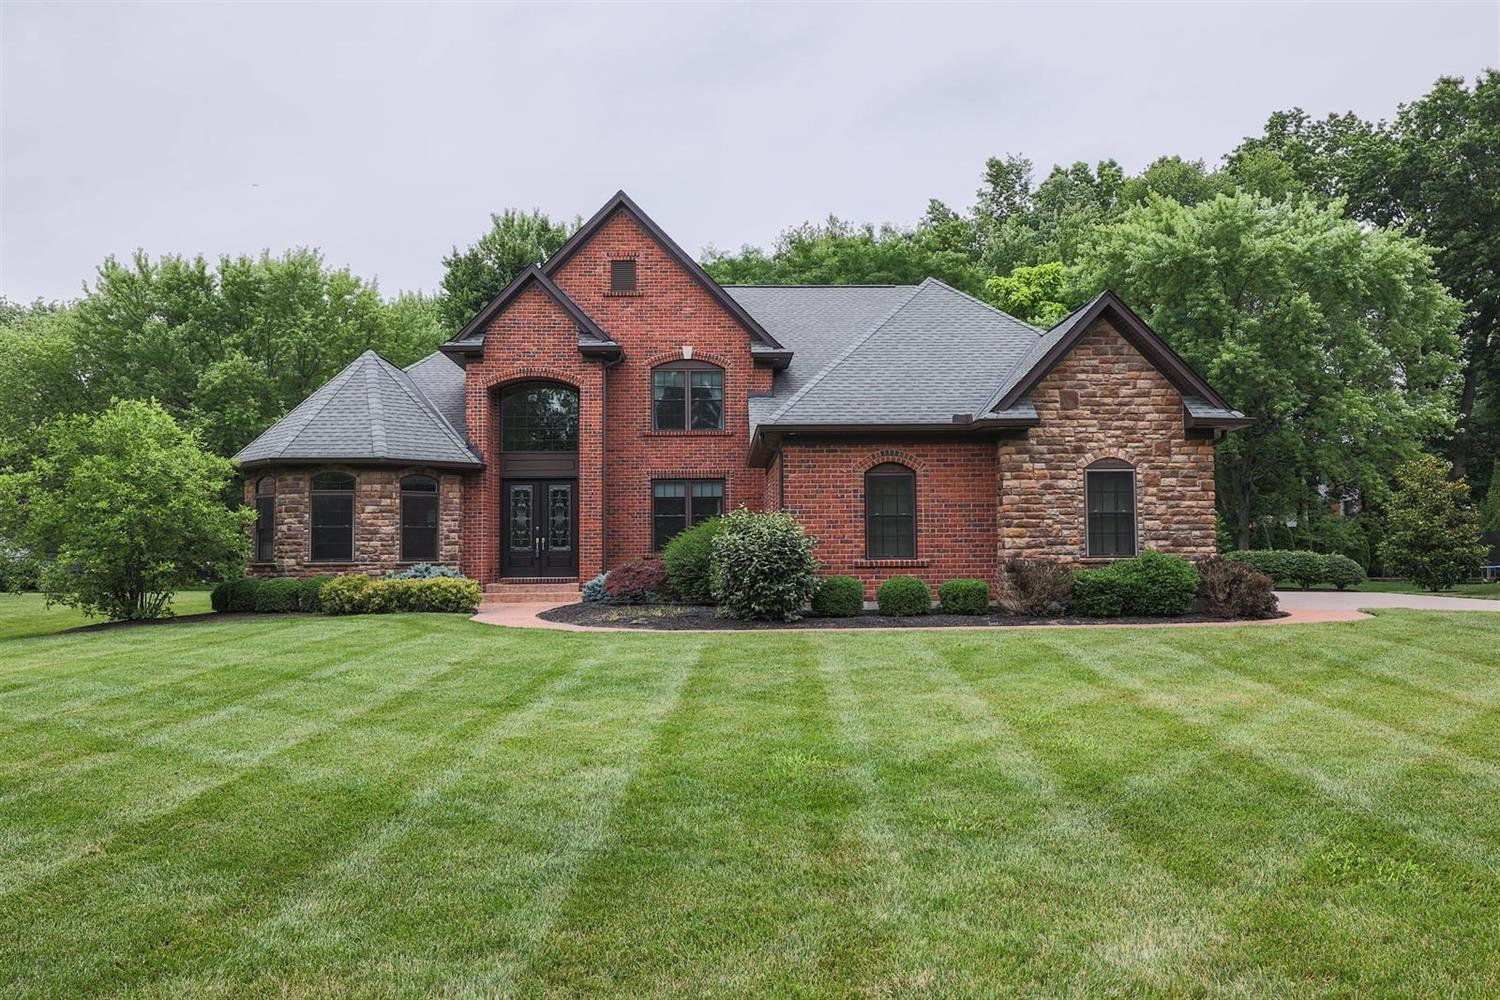 11680 Enyart Road, Symmes Twp, Ohio 45140, 5 Bedrooms Bedrooms, 12 Rooms Rooms,4 BathroomsBathrooms,Single Family Residence,For Sale,Enyart,1705459